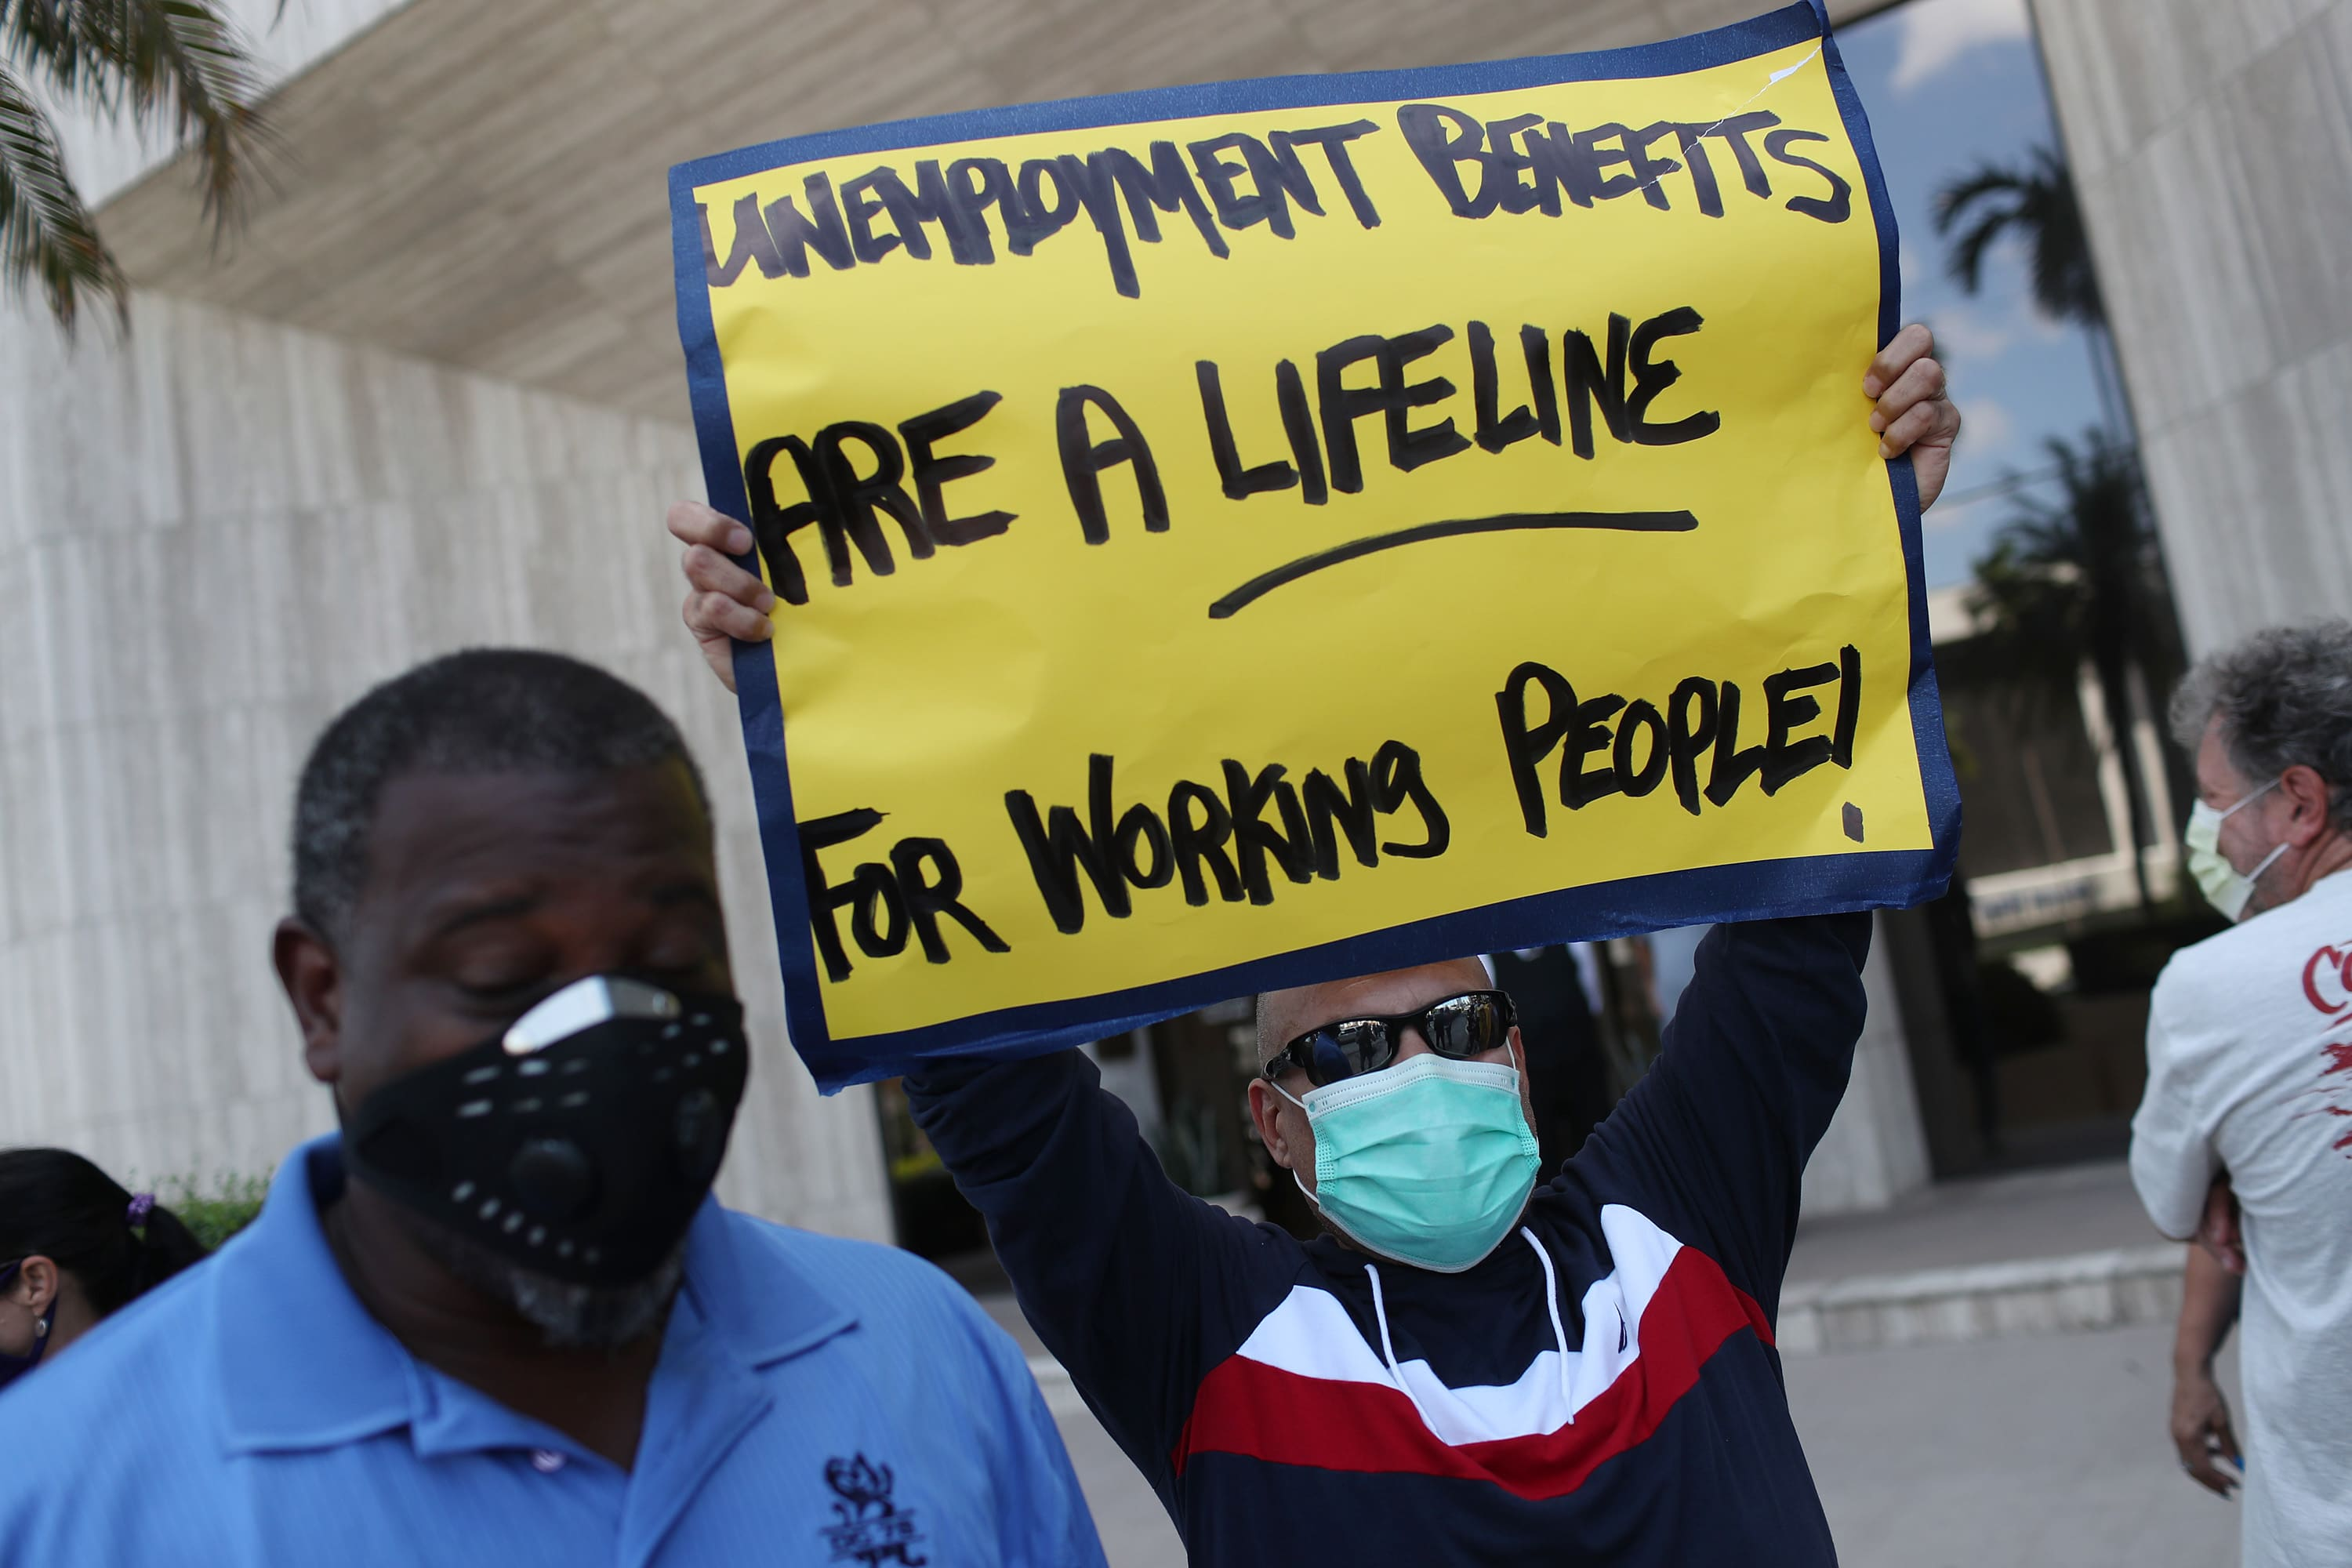 Unemployment benefits are less than minimum wage in many states